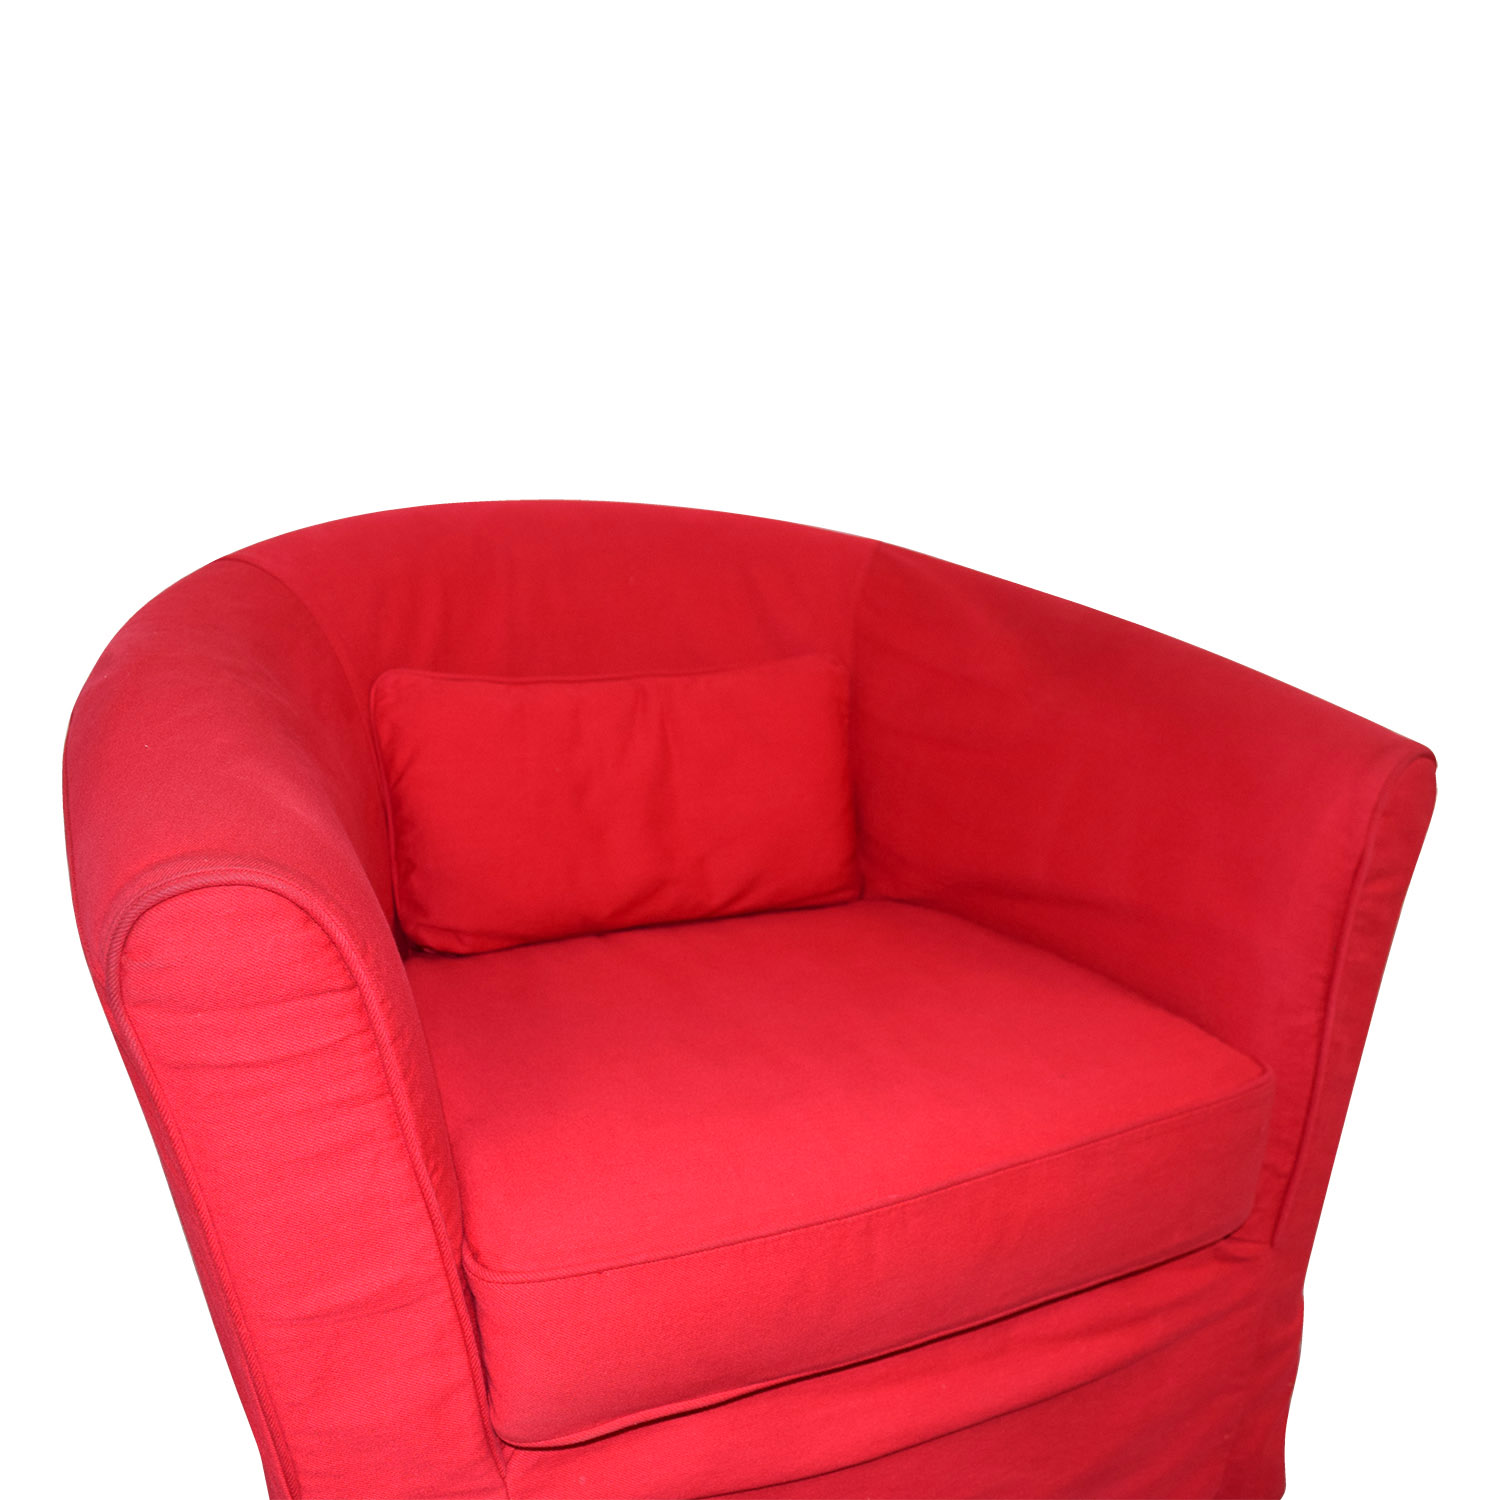 Tremendous 82 Off Crate Barrel Crate Barrel Red Upholstered Chair With Removable Cover Chairs Gamerscity Chair Design For Home Gamerscityorg